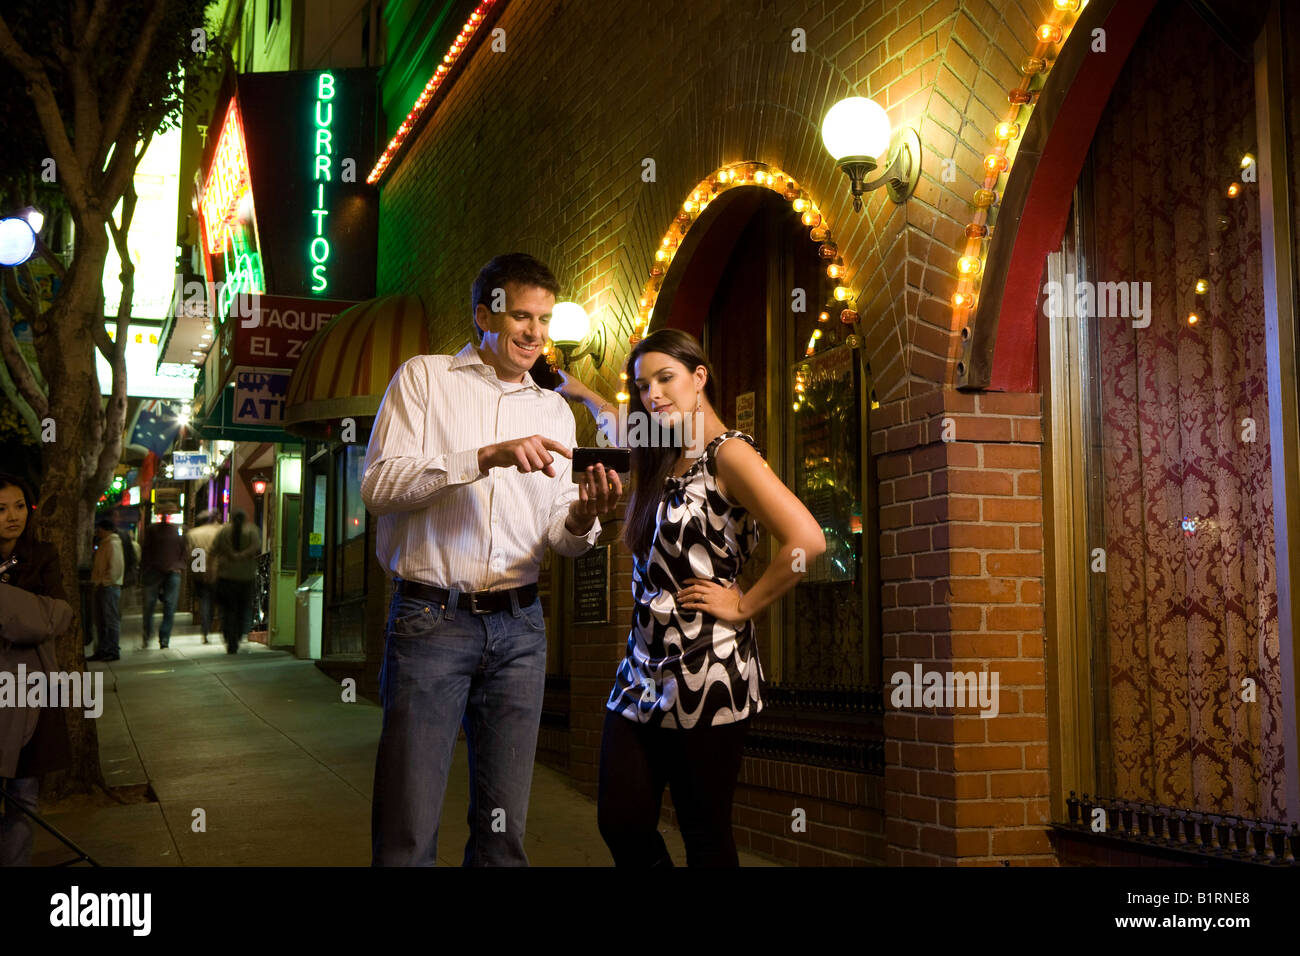 A young man and woman stand in a well lit street at nightfall carrying a hand held device. - Stock Image